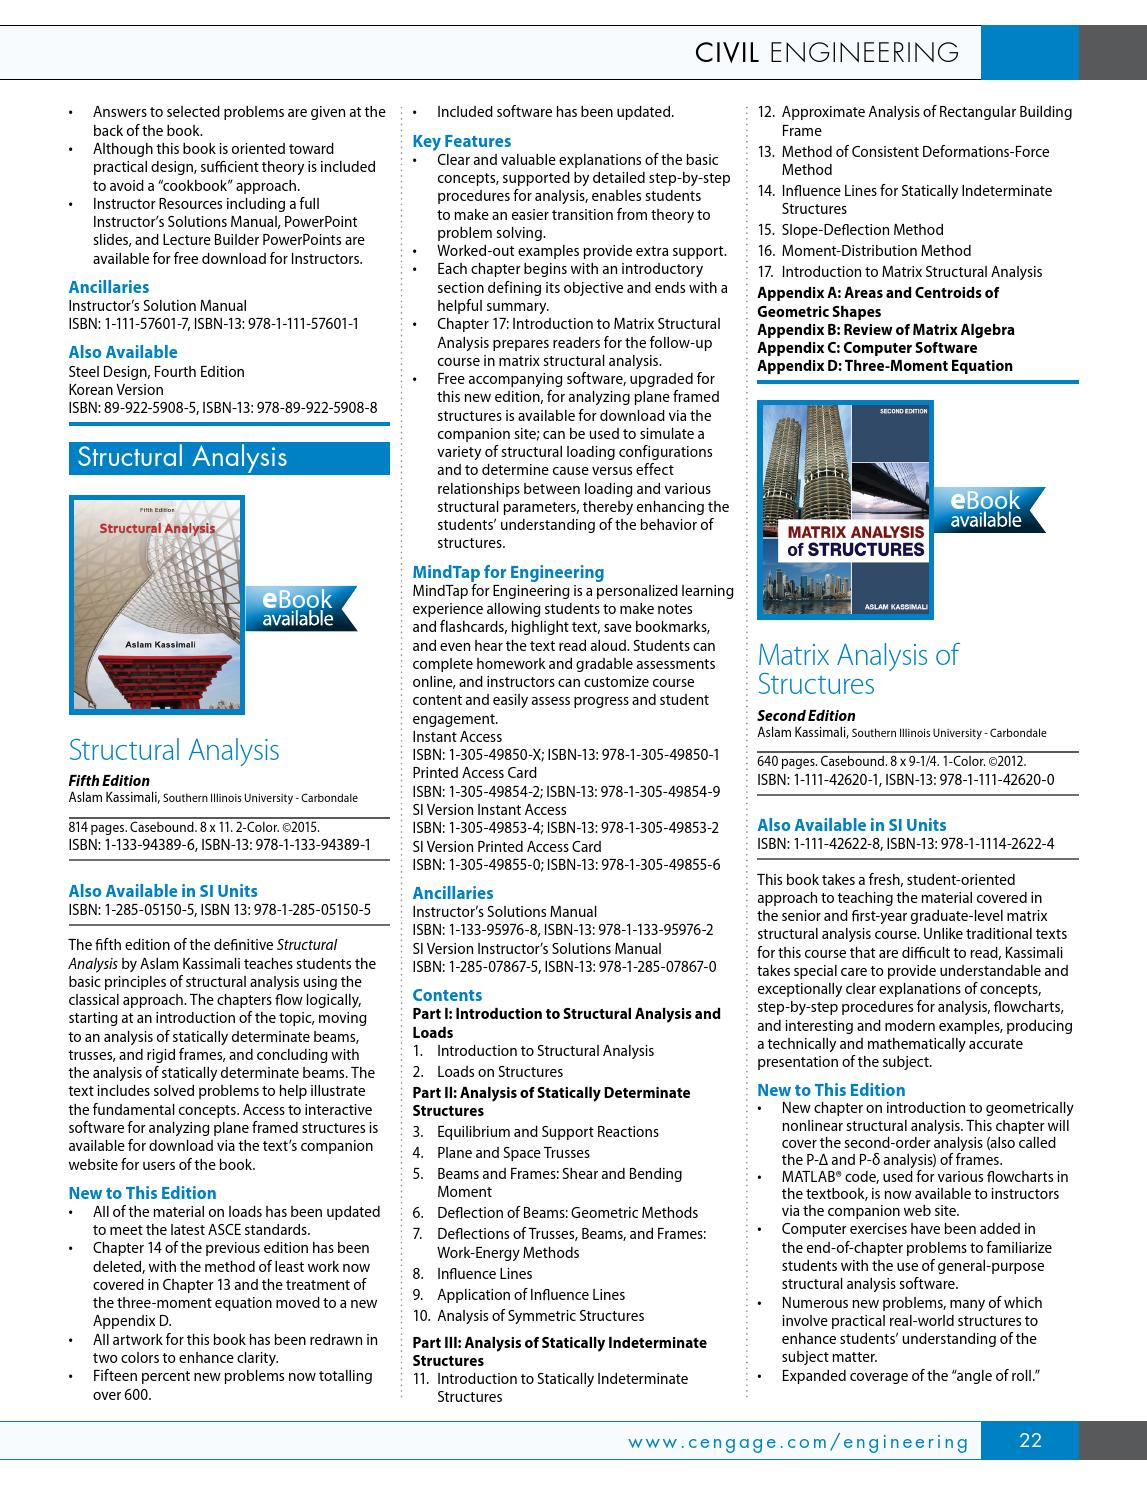 Cengage Learning Global Engineering 2015 Catalog by Cengage Learning Global  Engineering - issuu